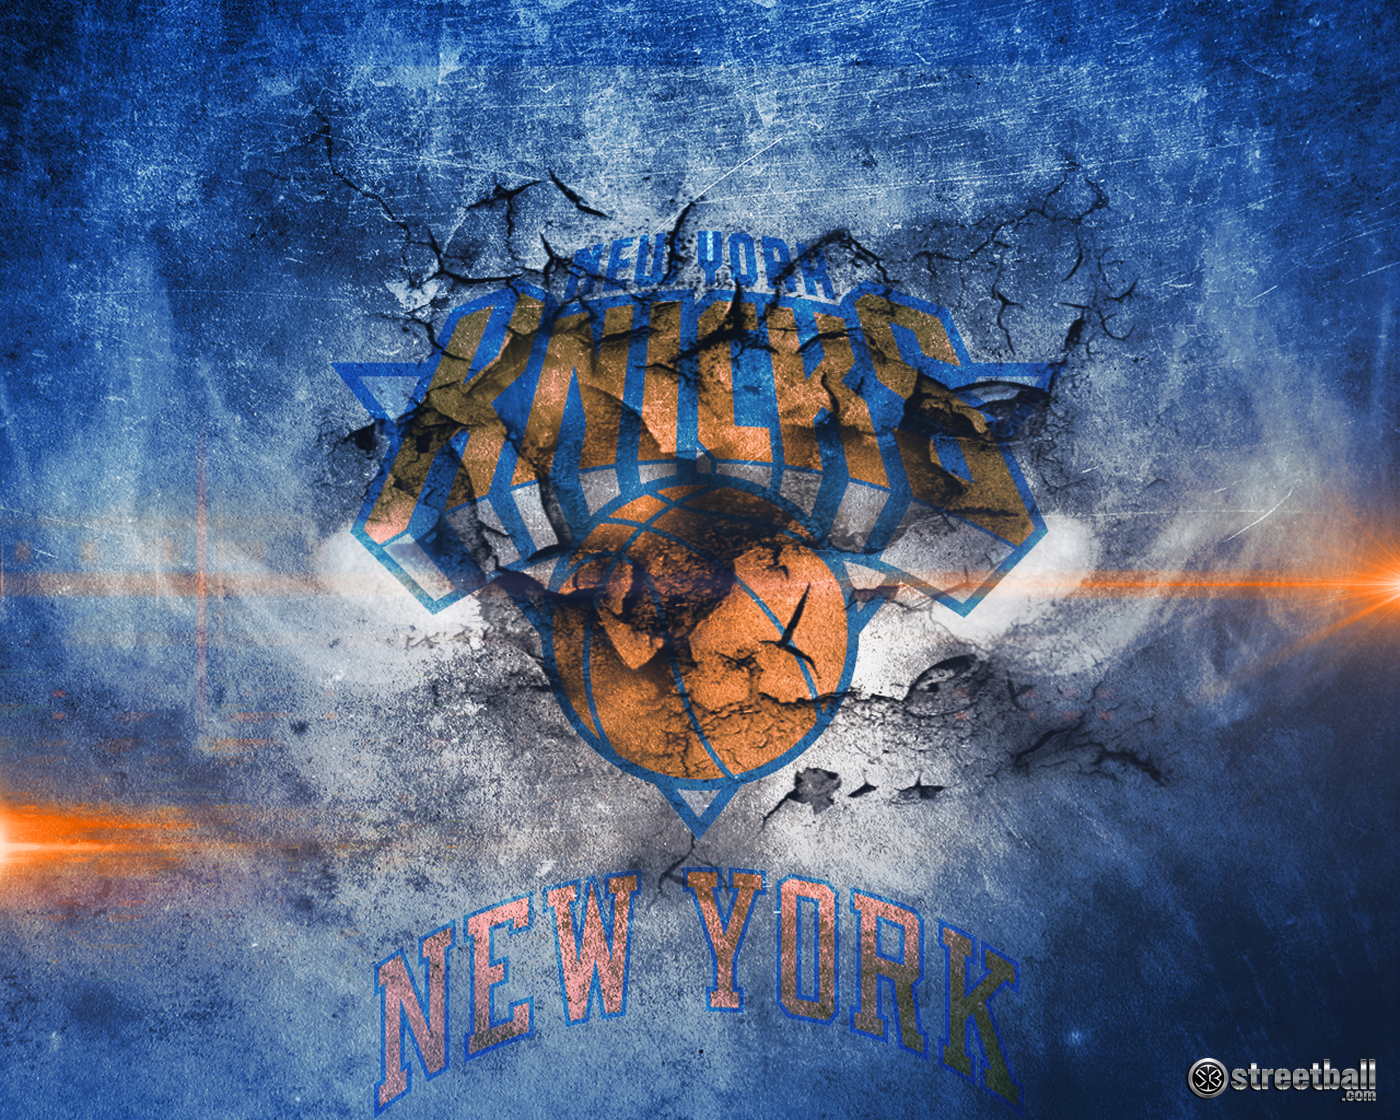 Free Download New York Knicks Wallpapers New York Knicks Background Page 2 1400x1120 For Your Desktop Mobile Tablet Explore 42 Knicks Hd Wallpaper Knicks Iphone Wallpaper Cool Basketball Wallpaper